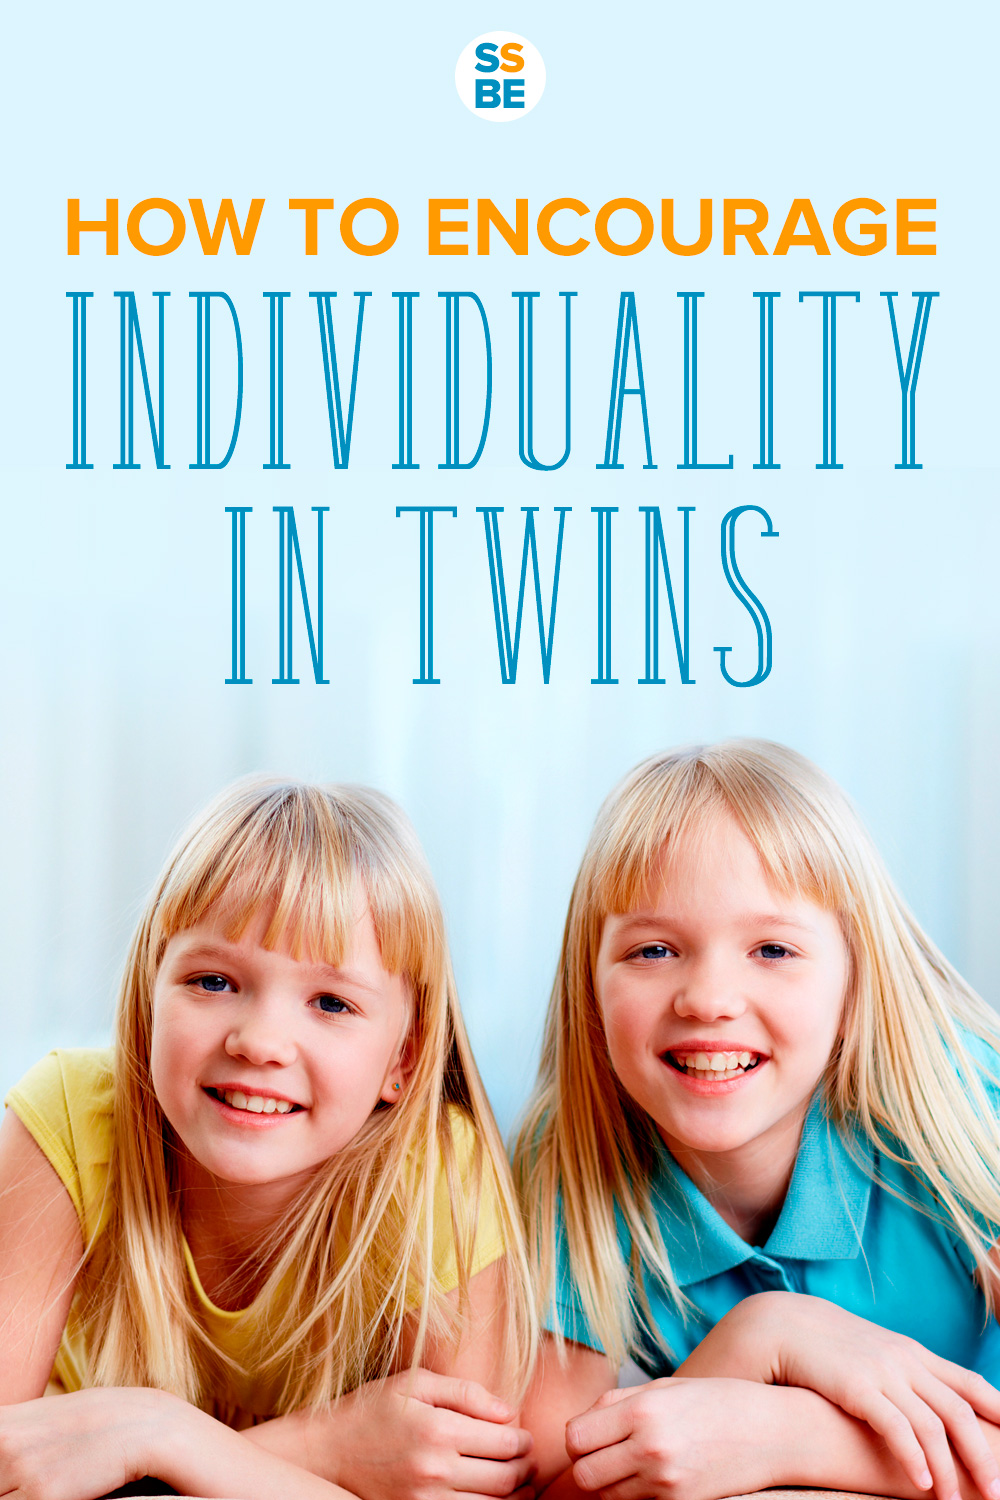 Worried that your twins are getting lumped in together too much? Encourage individuality in twins to develop their unique personalities and interests.